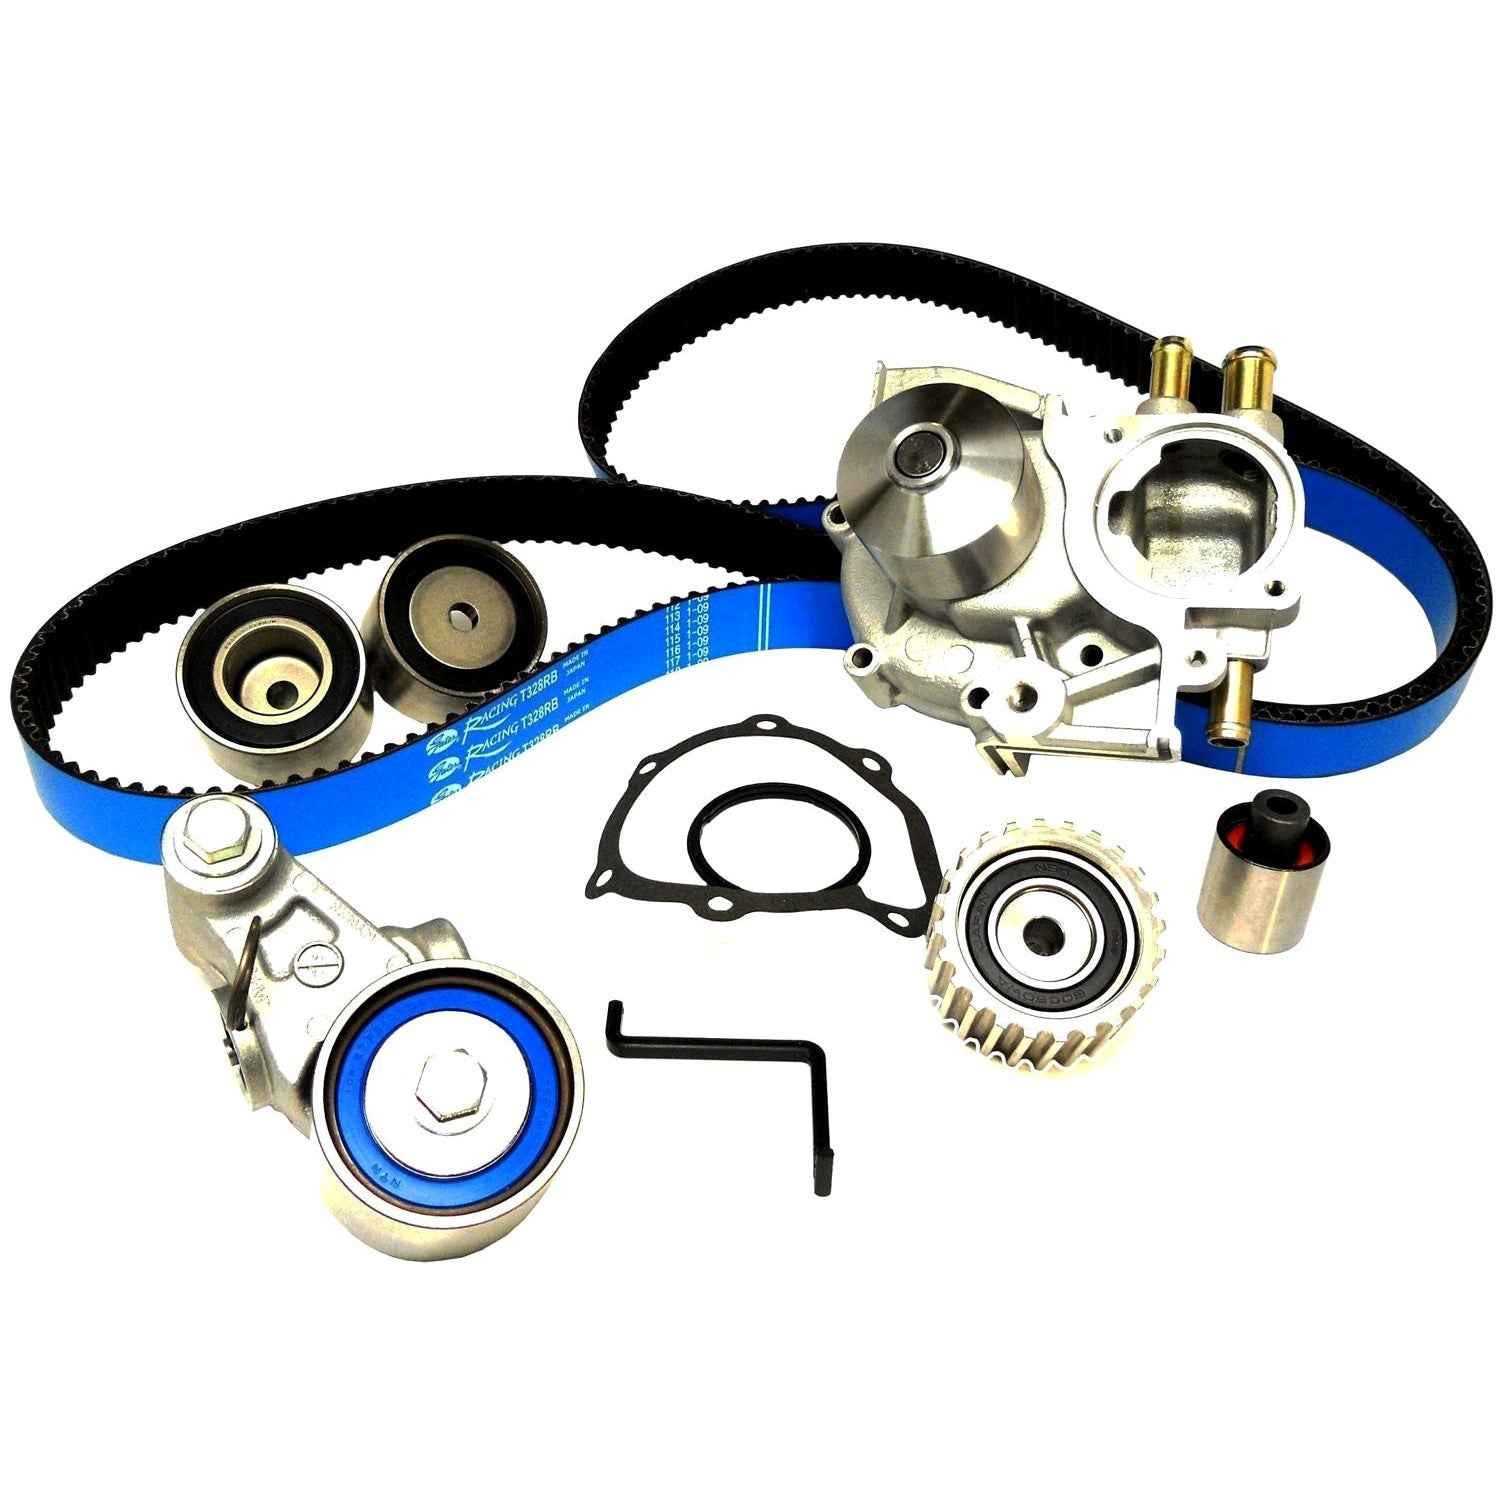 Timing Belt Components Ej205 Engine Diagram Gates Racing Kit With Water Pump 2005 2009 Legacy Gt Outback Xt